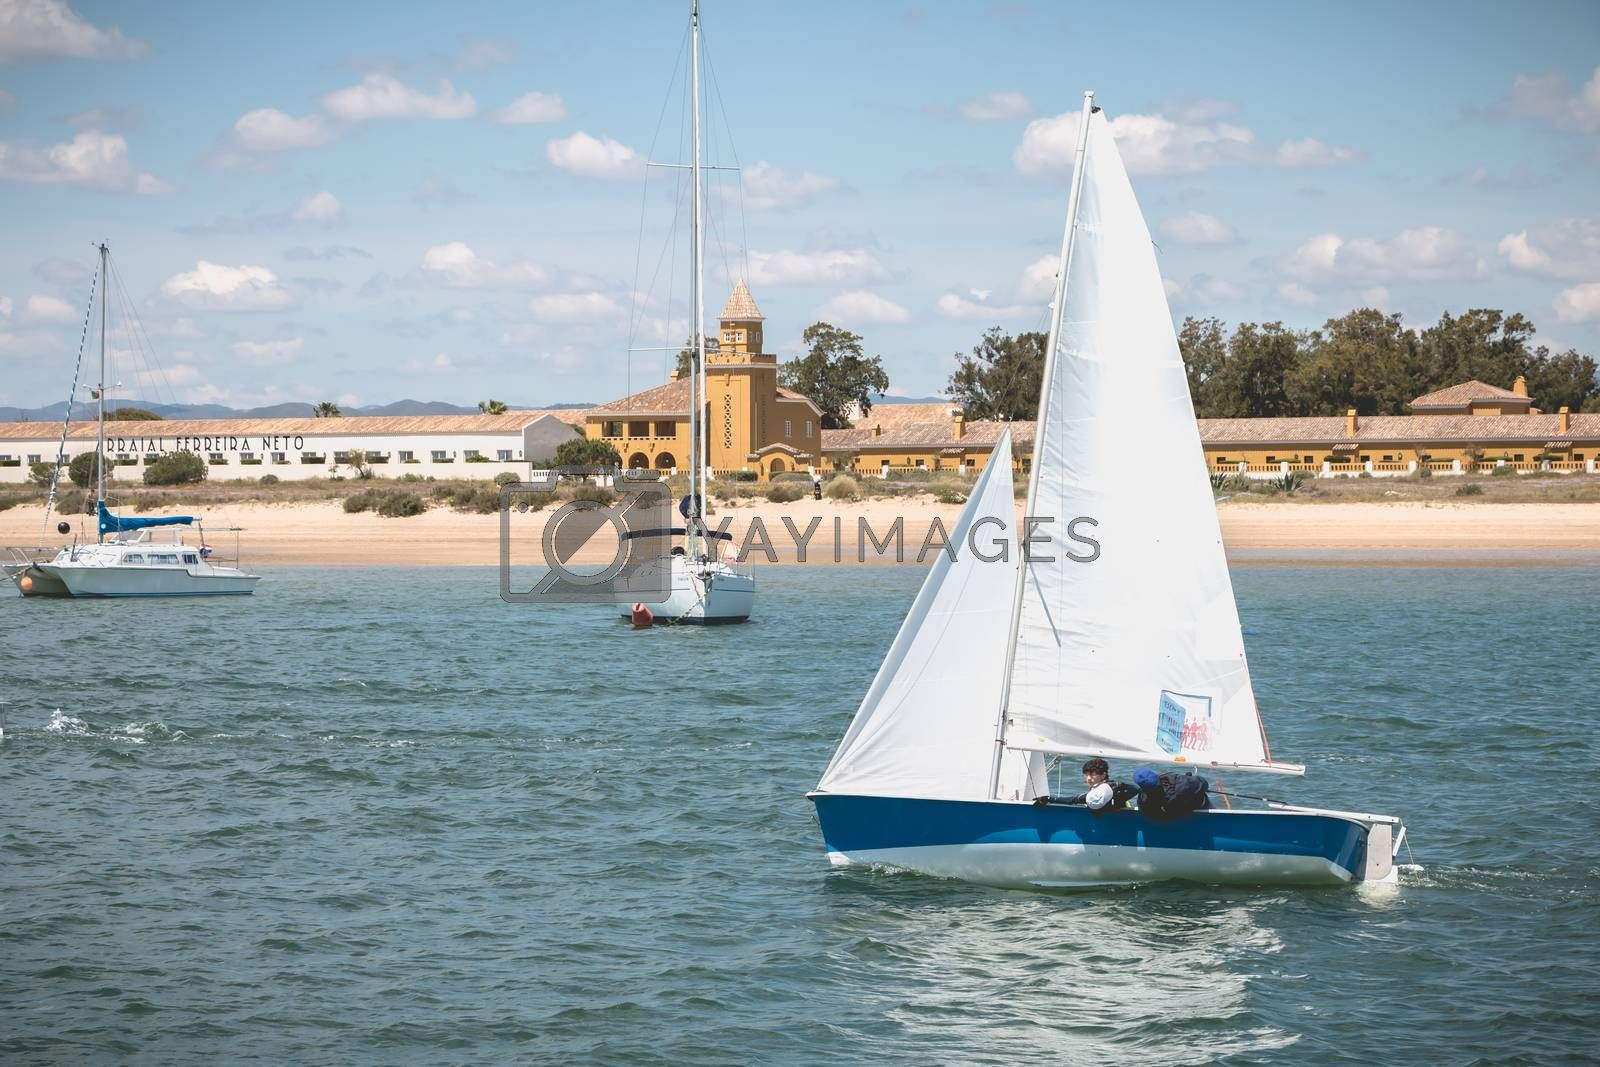 Tavira Island, Portugal - May 3, 2018: People dressed as sailor taking a boat lesson on the Ria Formosa lagoon on a spring day